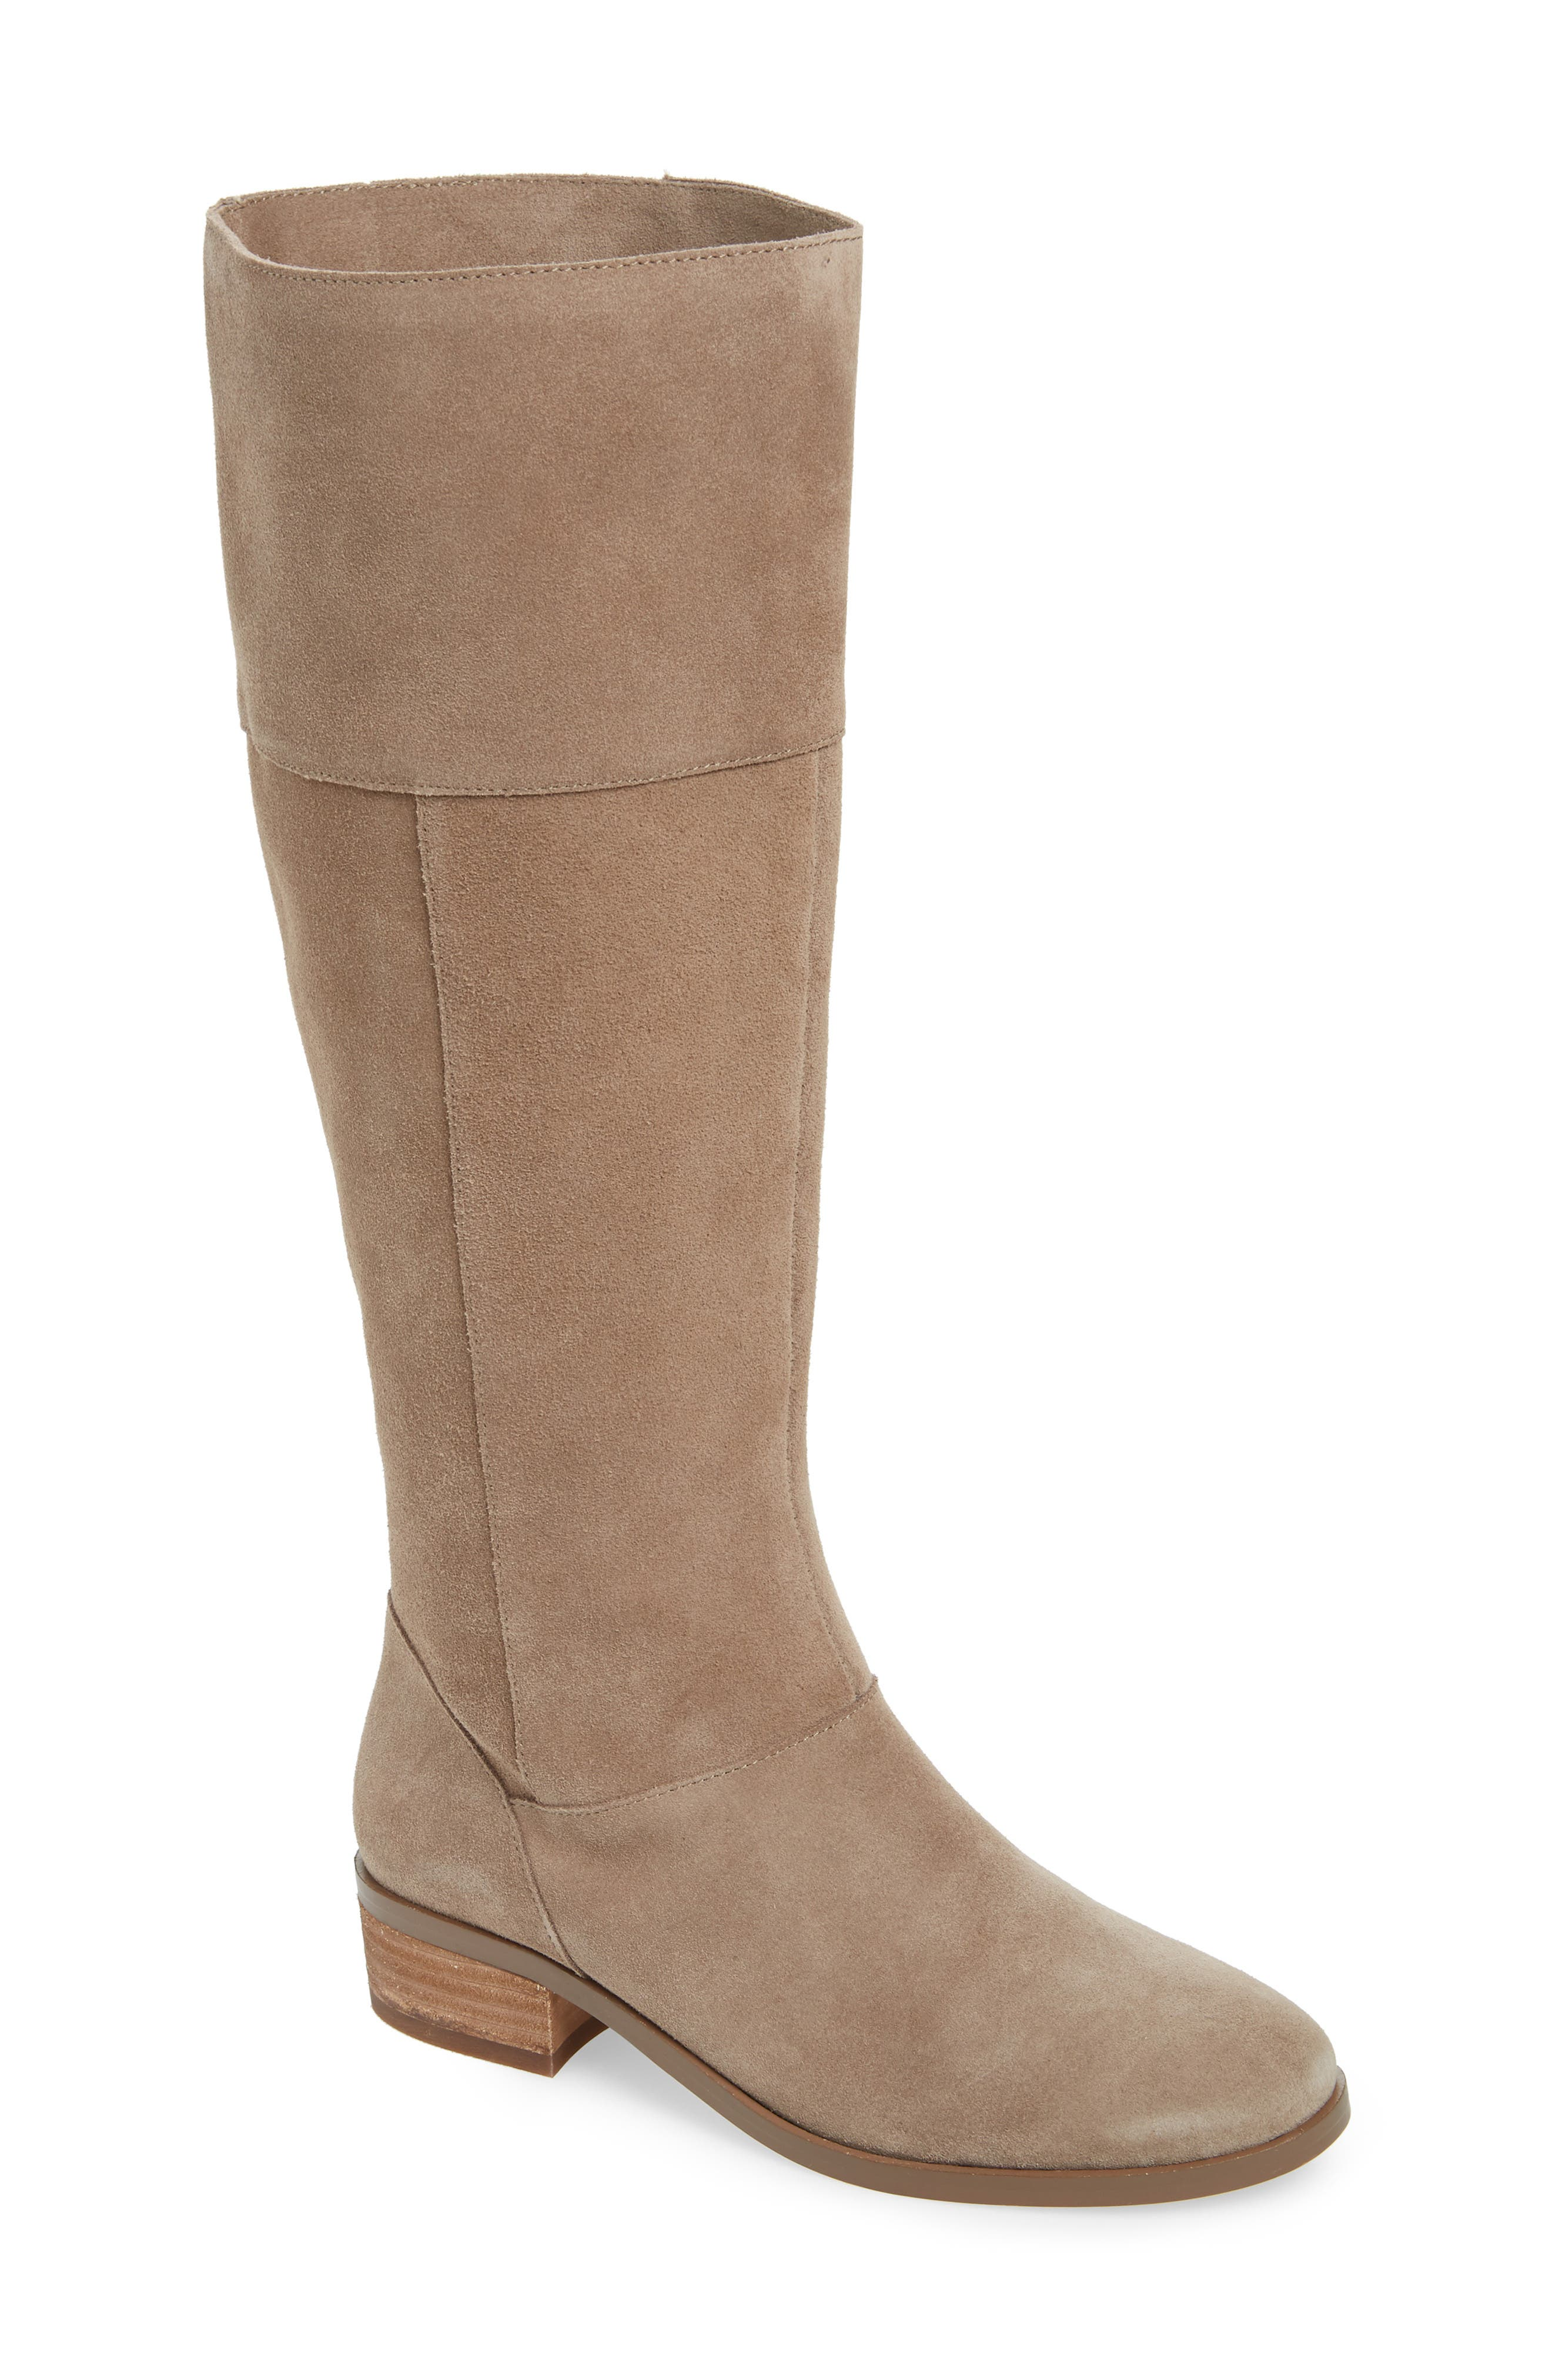 Sole Society Carlie Knee High Boot, Beige